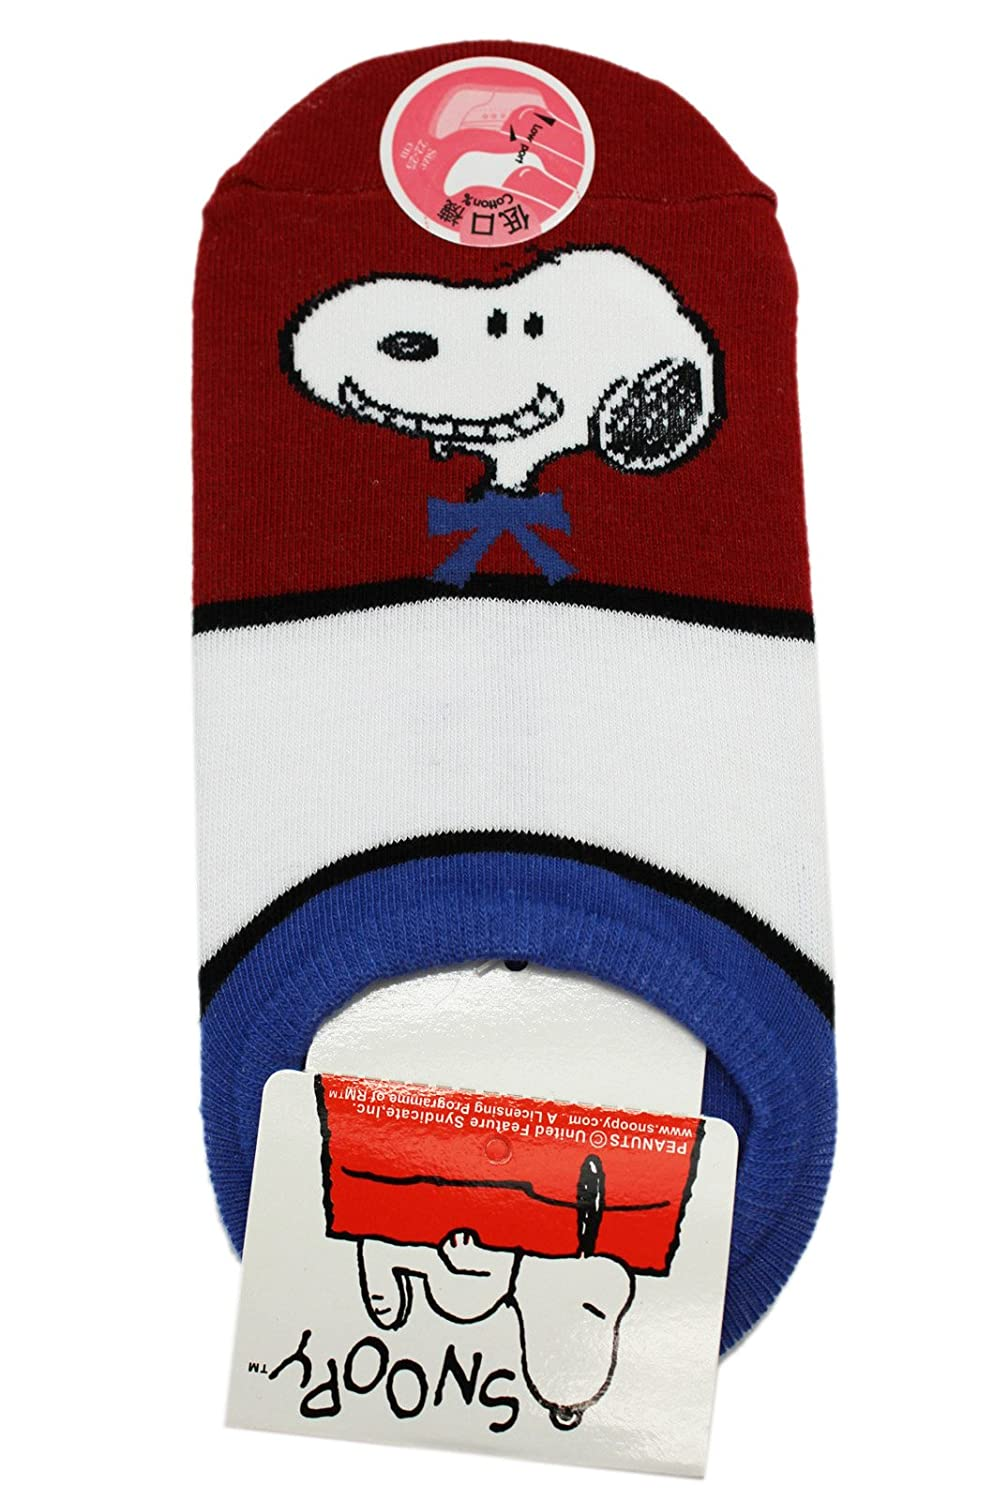 c8d19e2d21 Amazon.com  Smiling Snoopy Red